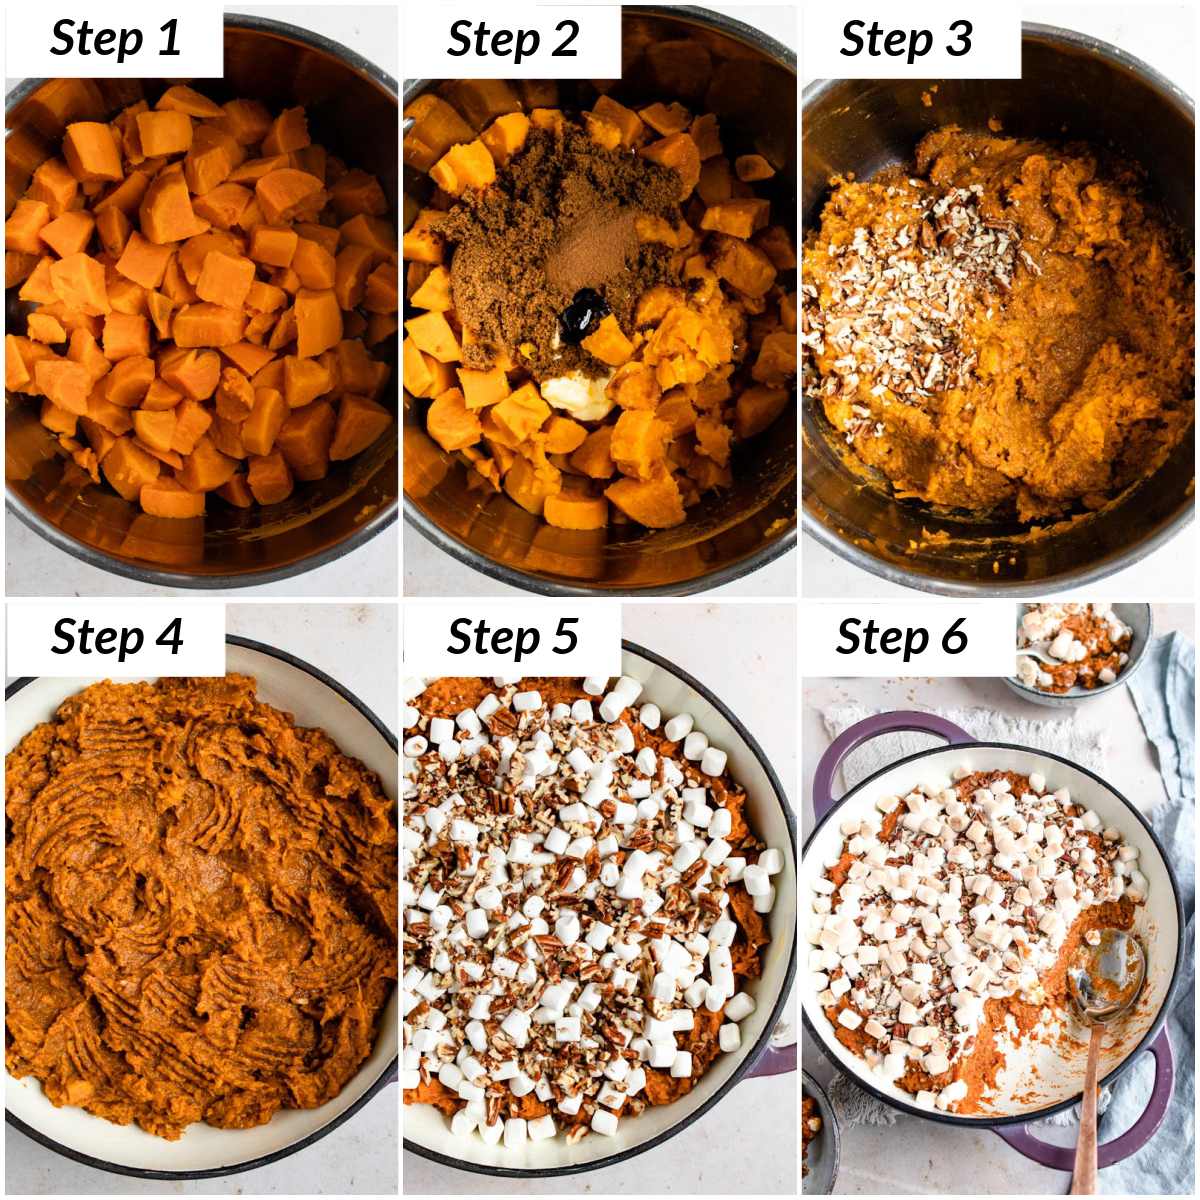 image collage showing the steps for making sweet potato casserole